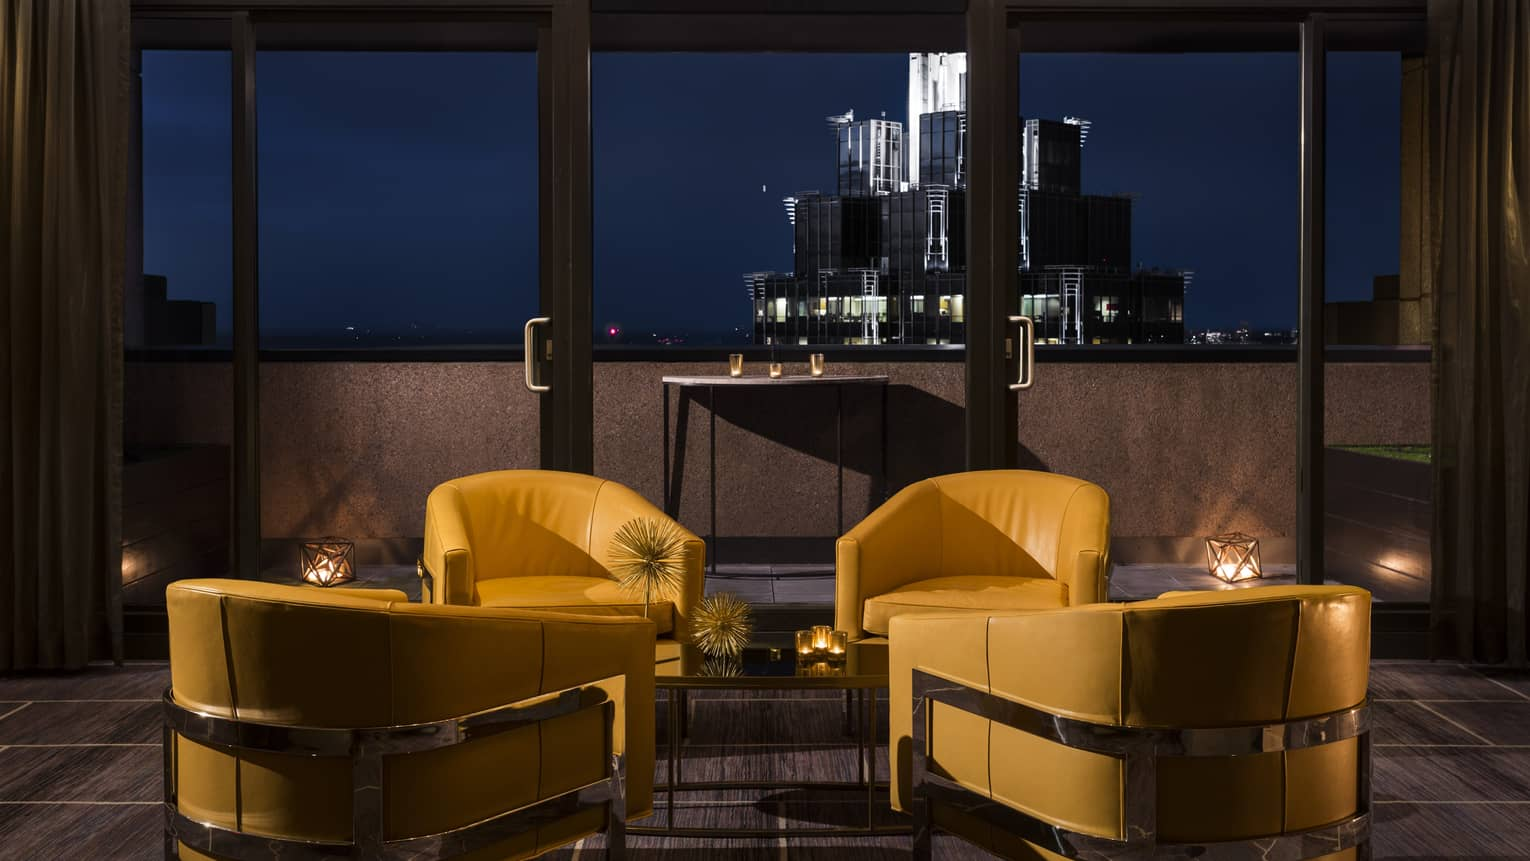 Yellow leather lounge chairs at dusk, the cityscape in the background